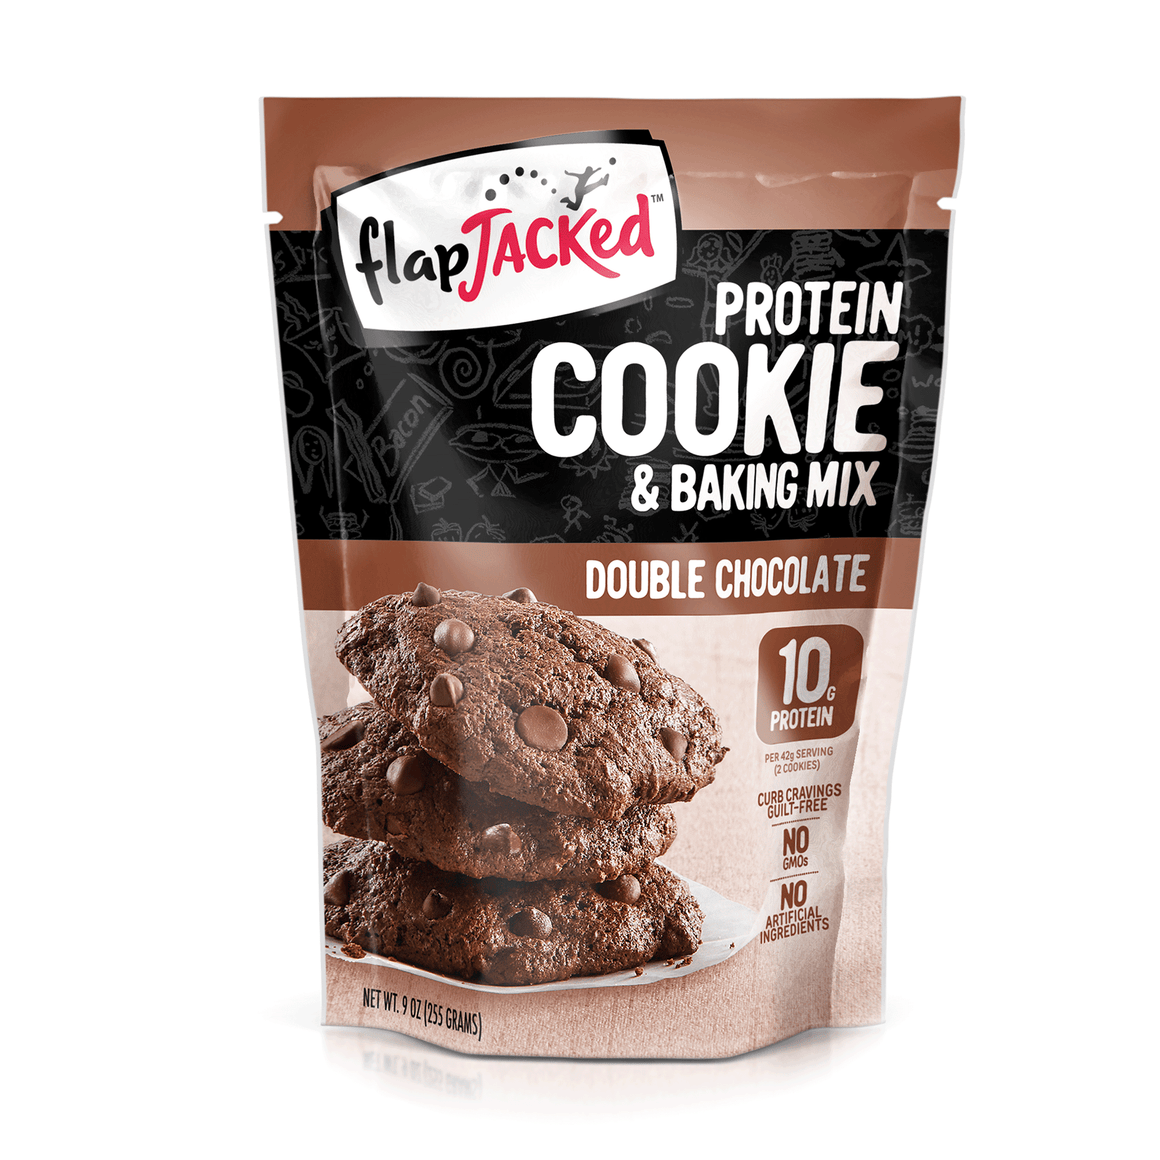 Double Chocolate Protein Cookie & Baking Mix